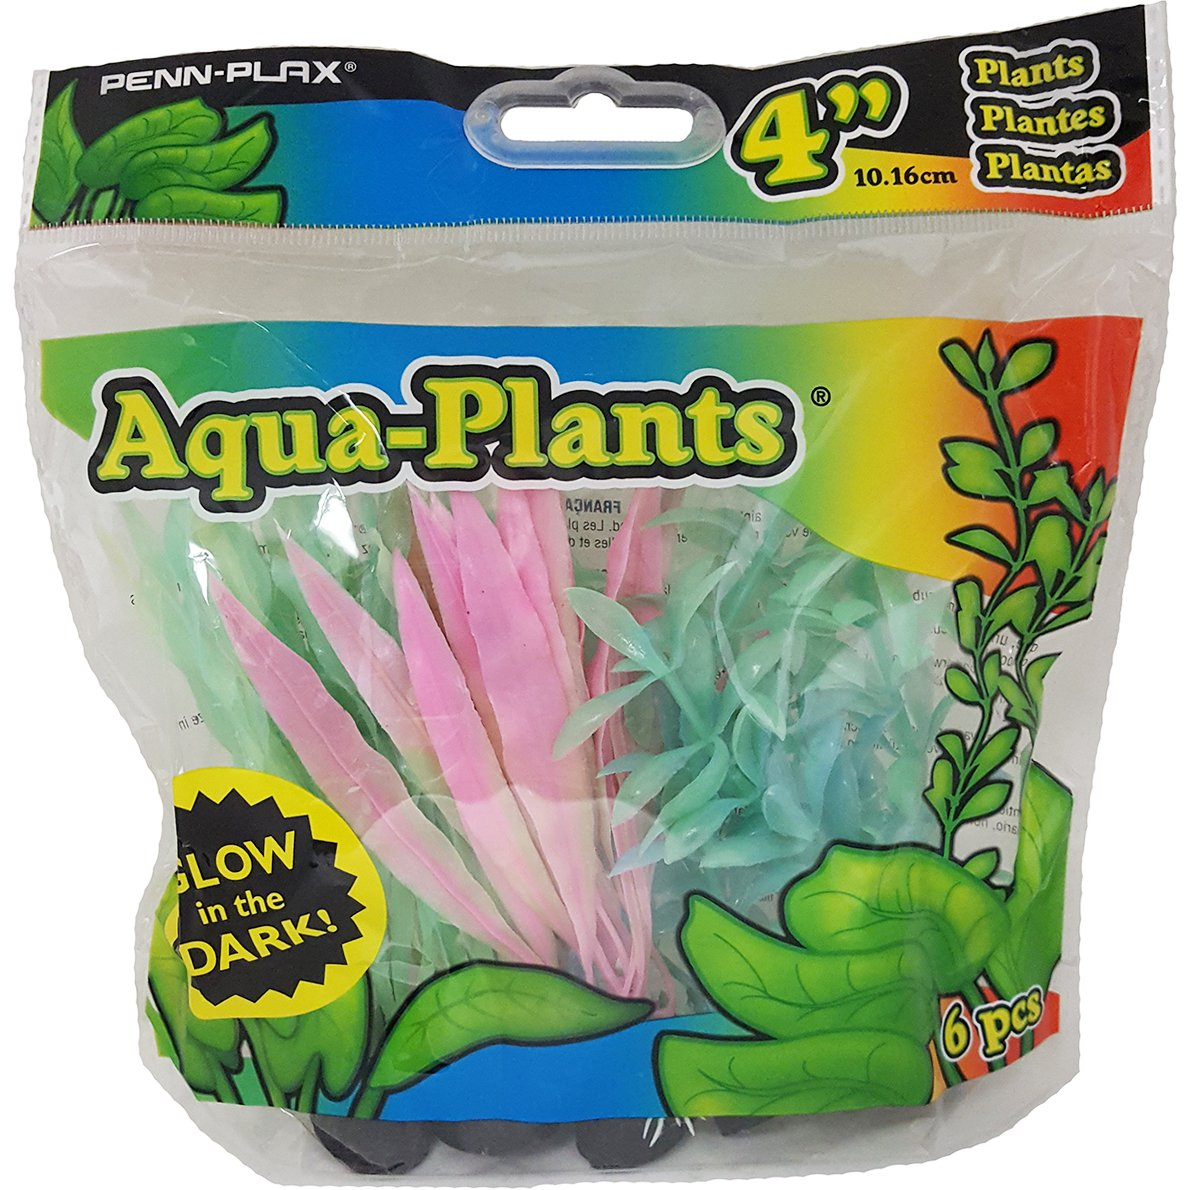 "Penn-Plax® 4"" Glow-in-the-Dark Aqua-Plants® 6PK - Critter Country Supply Ltd."